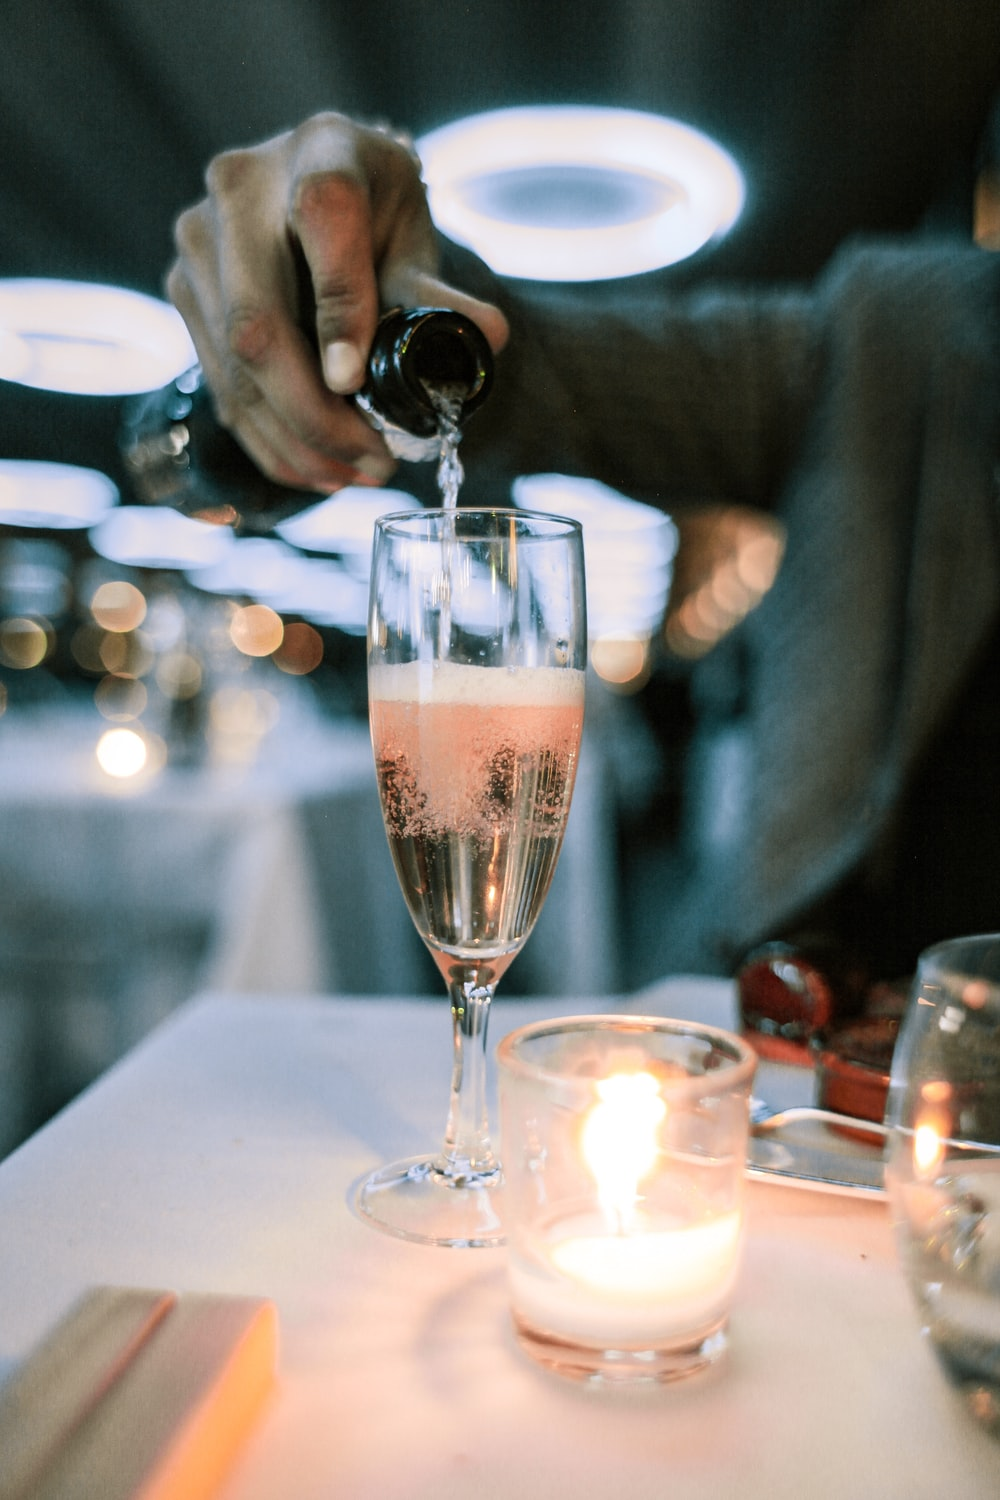 person putting champagne in champagne glass